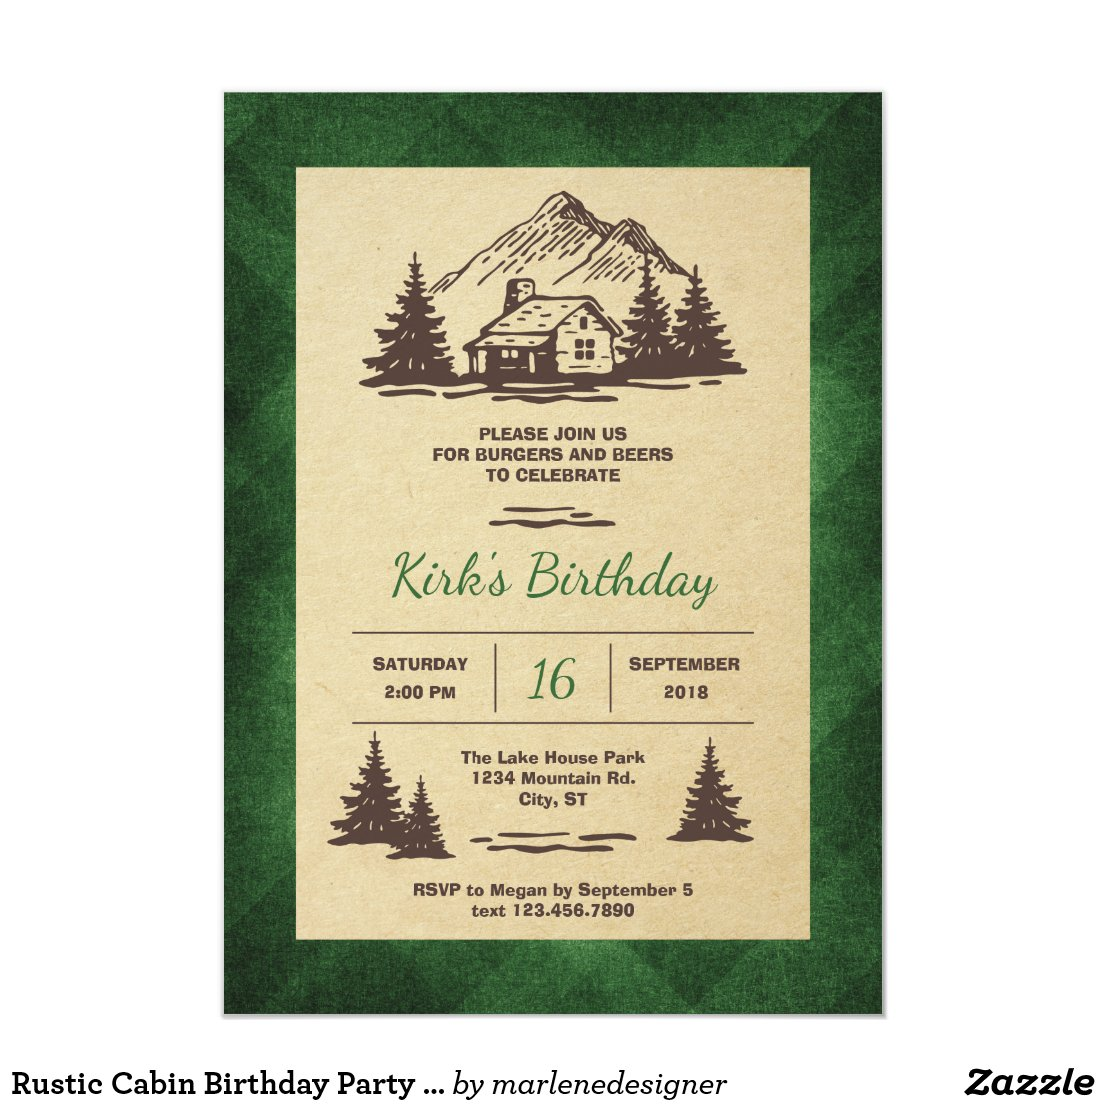 Rustic Cabin Birthday Party Invitation